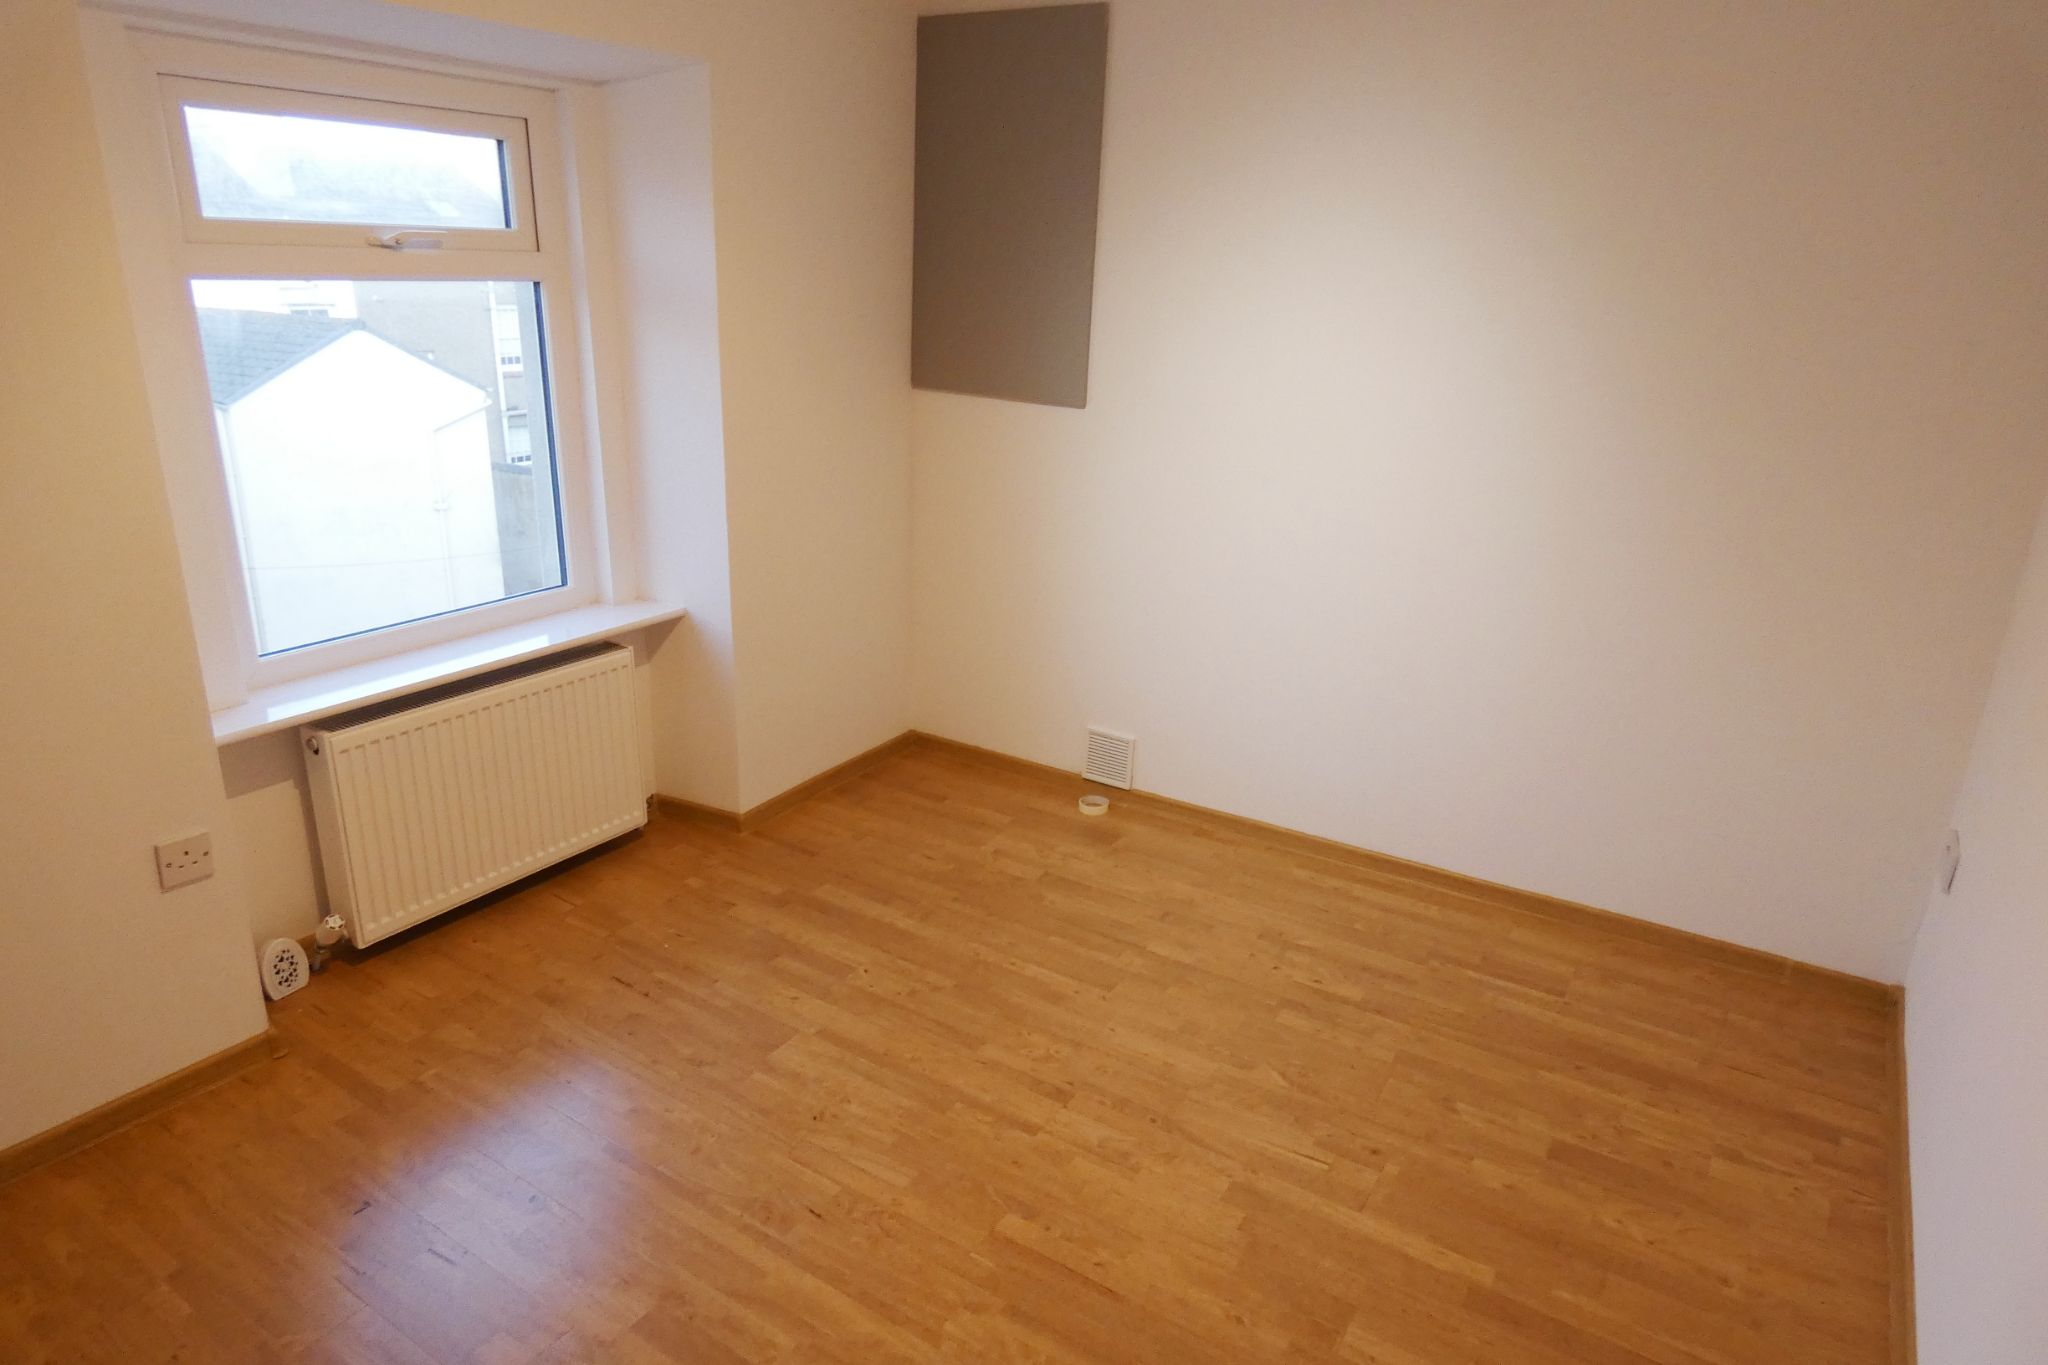 1 bedroom flat flat/apartment SSTC in Douglas - Photograph 6